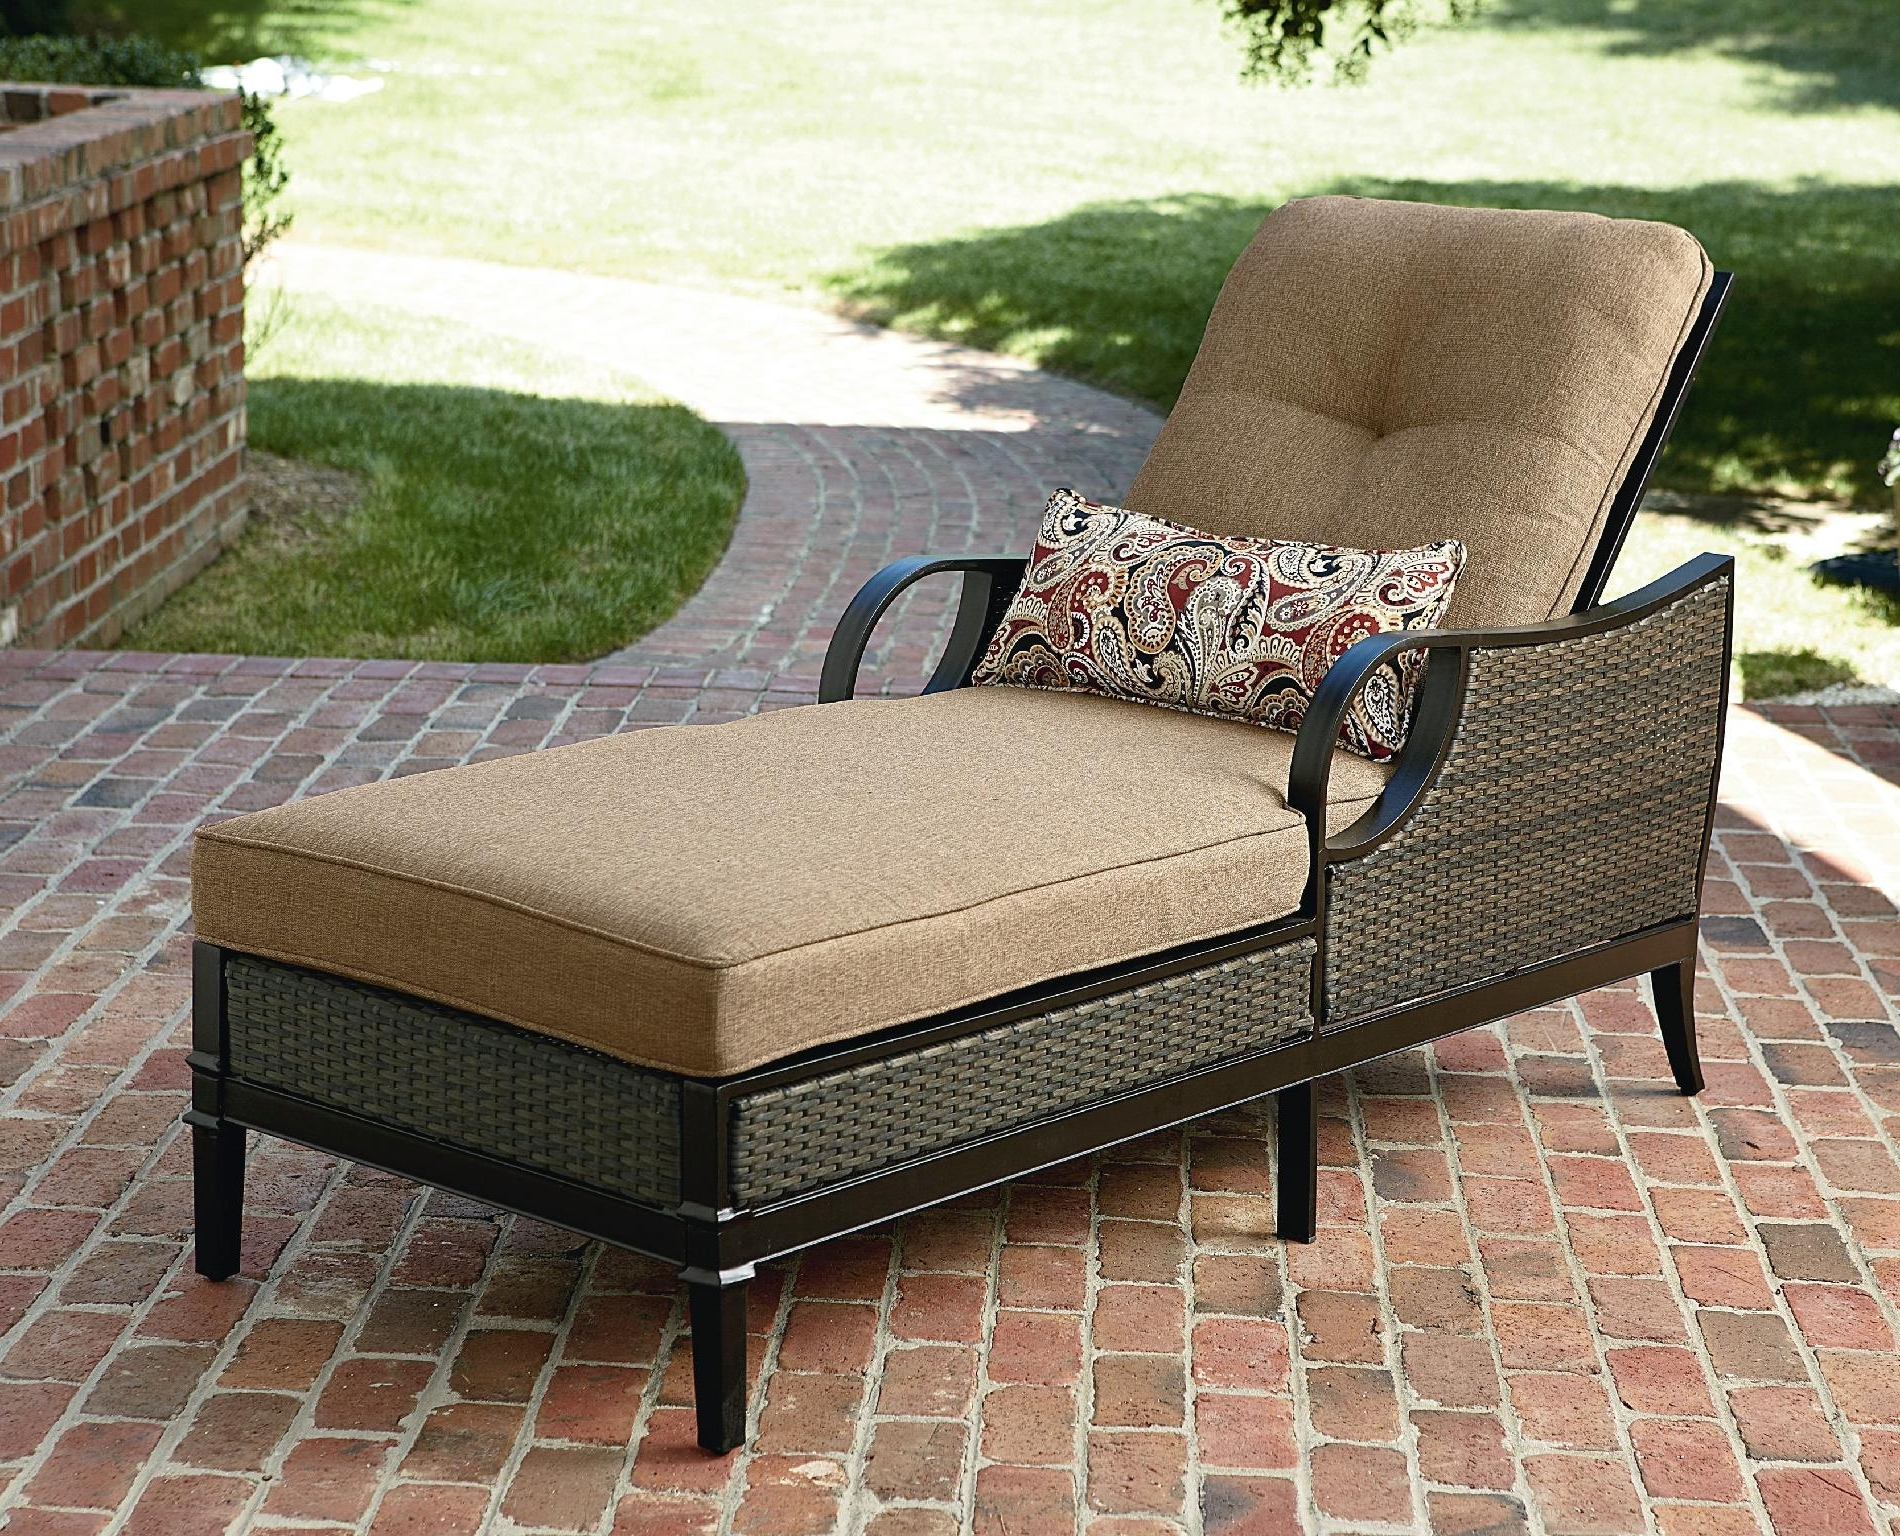 Preferred Lounge Chair Patio Sets • Lounge Chairs Ideas In Chaise Lounges For Patio (View 14 of 15)